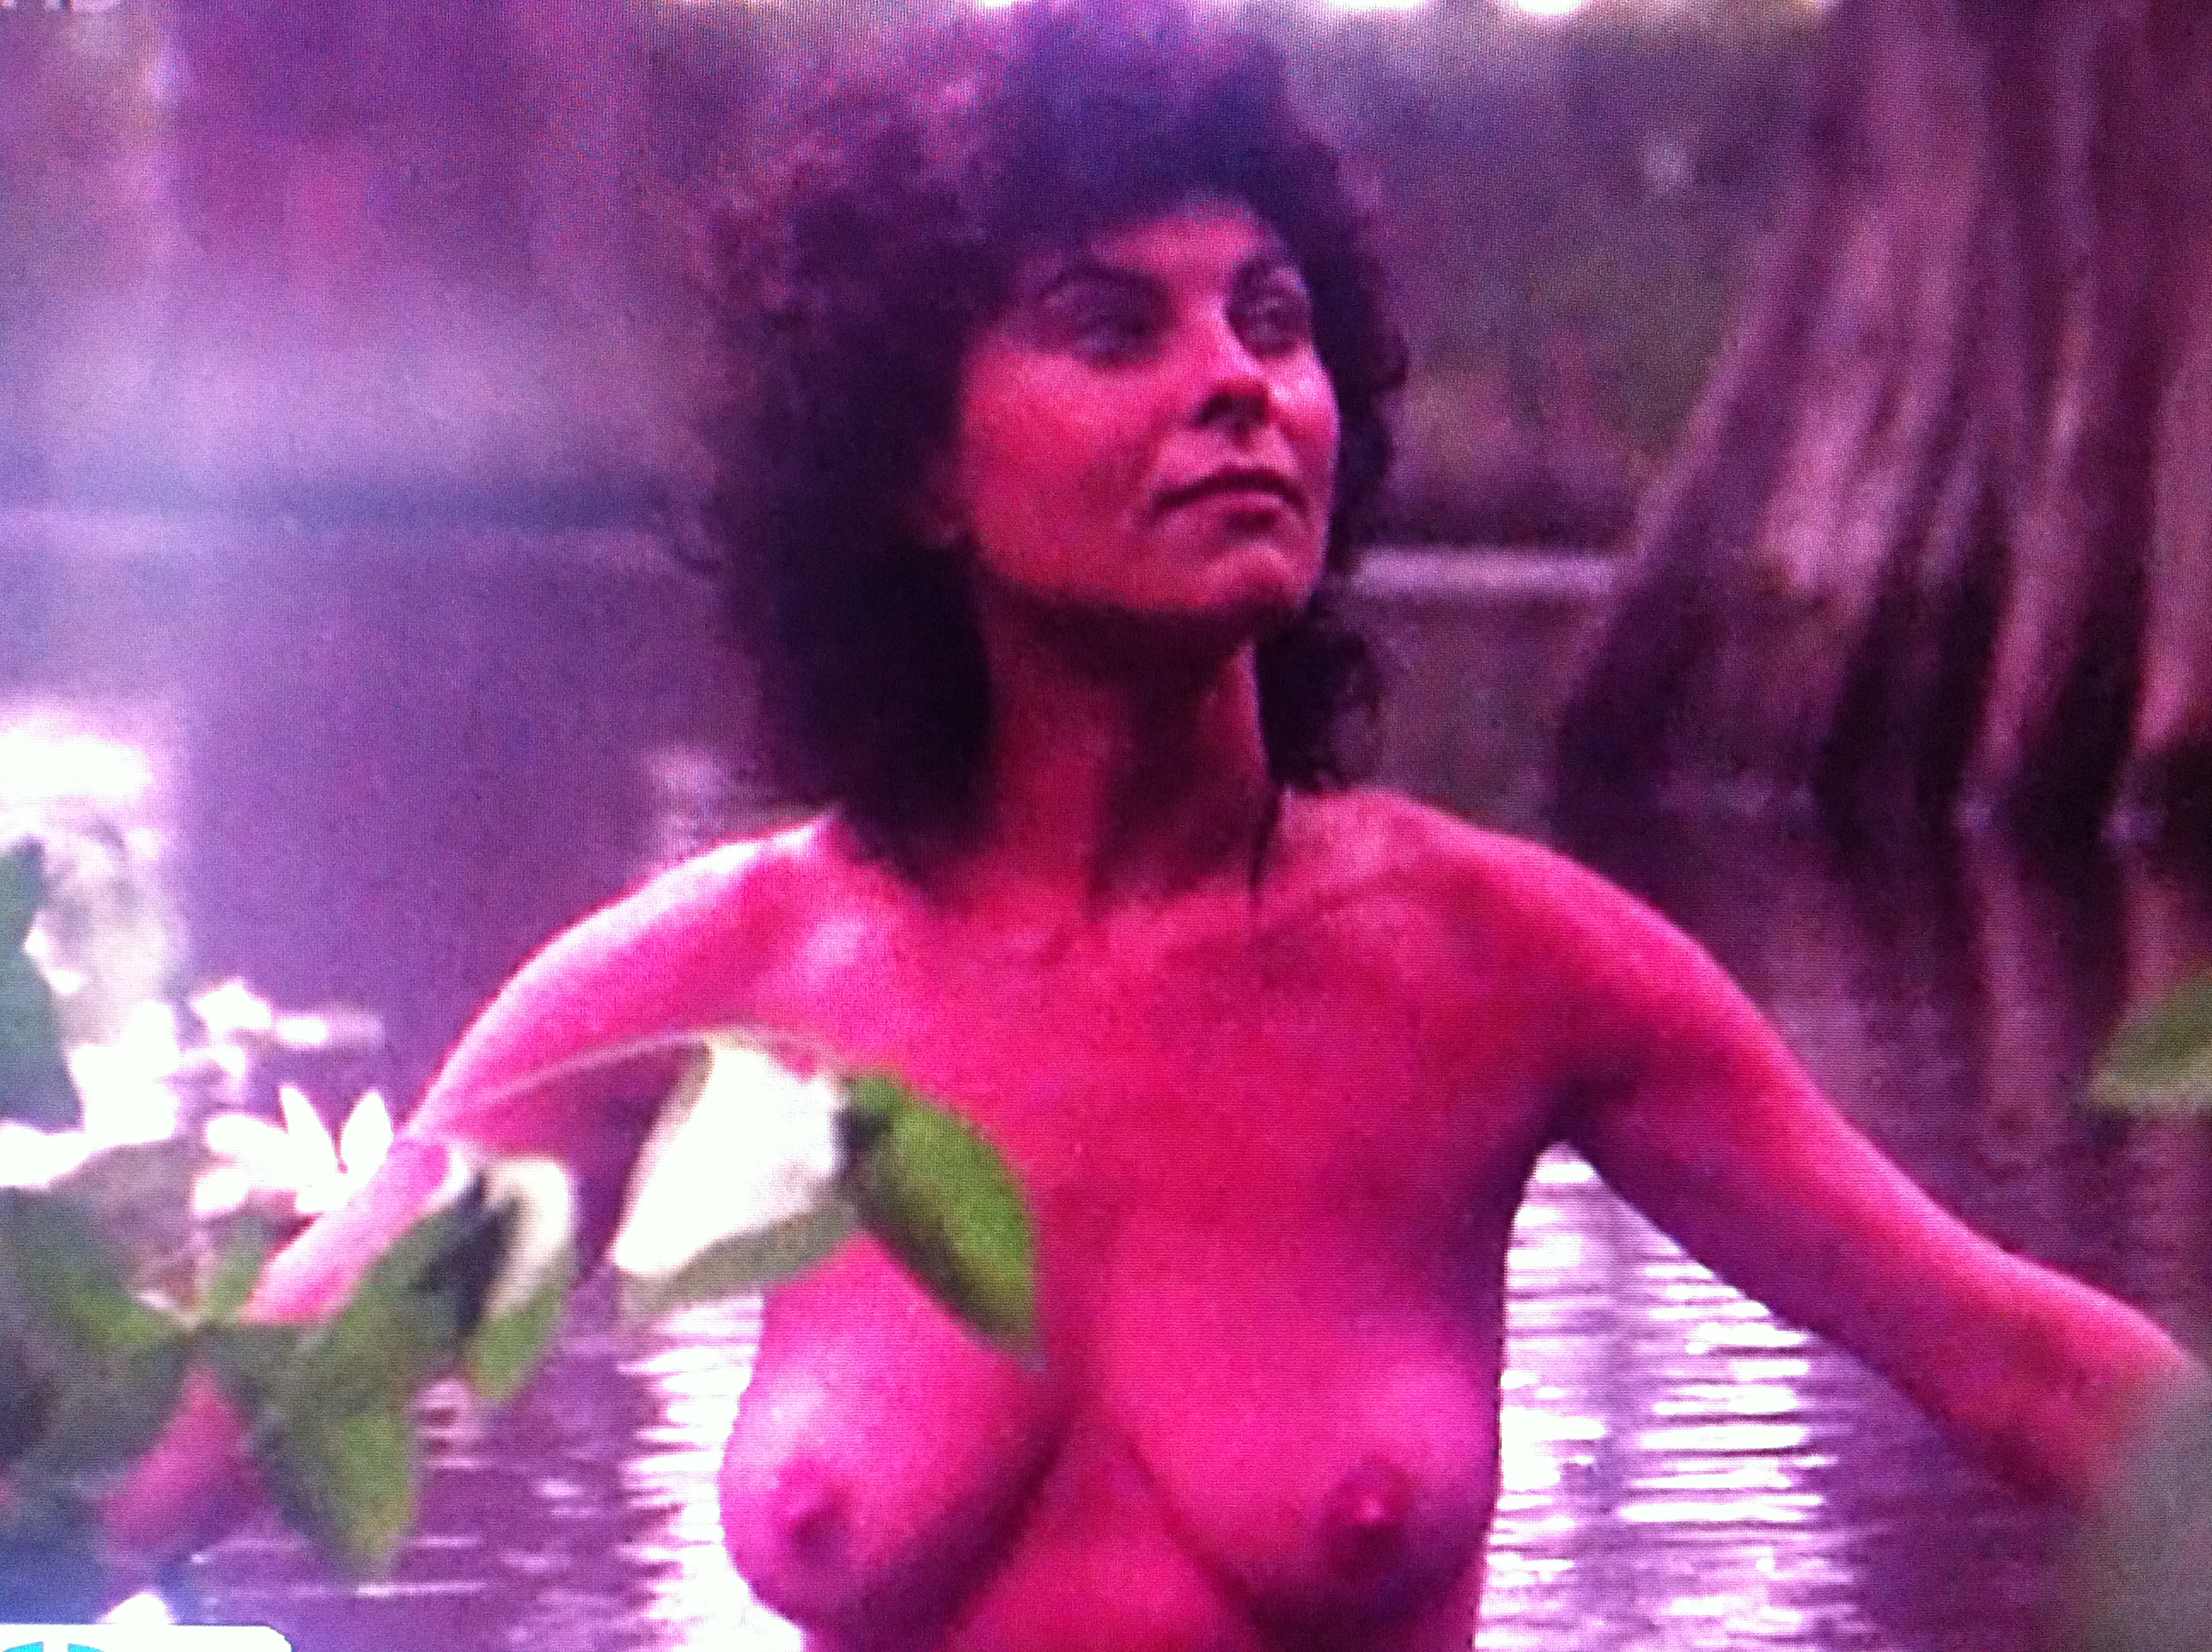 adrienne barbaeu naked - photos and other amusements